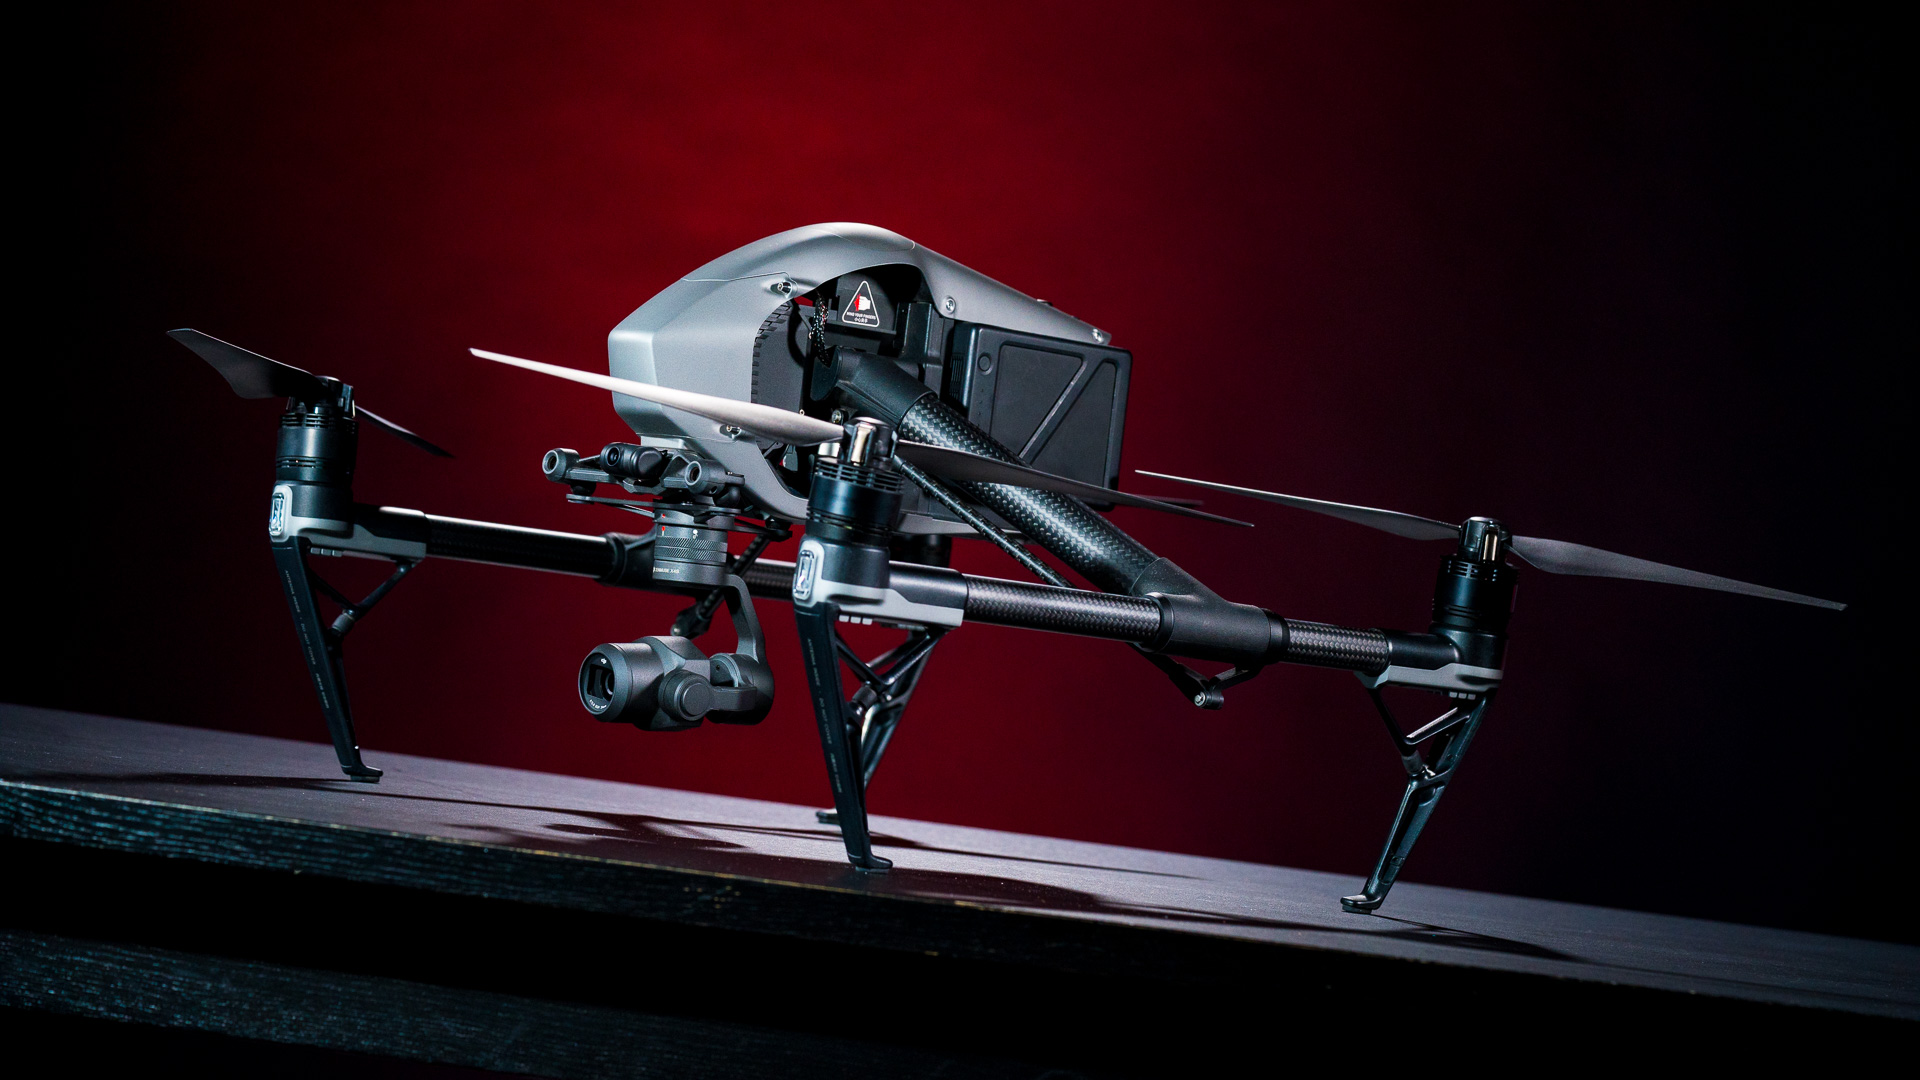 DJI's Inspire 2 is a beauty of a drone, with carbon fiber boom arms and magnesium aluminum composite fairings protecting the brains of the operation.